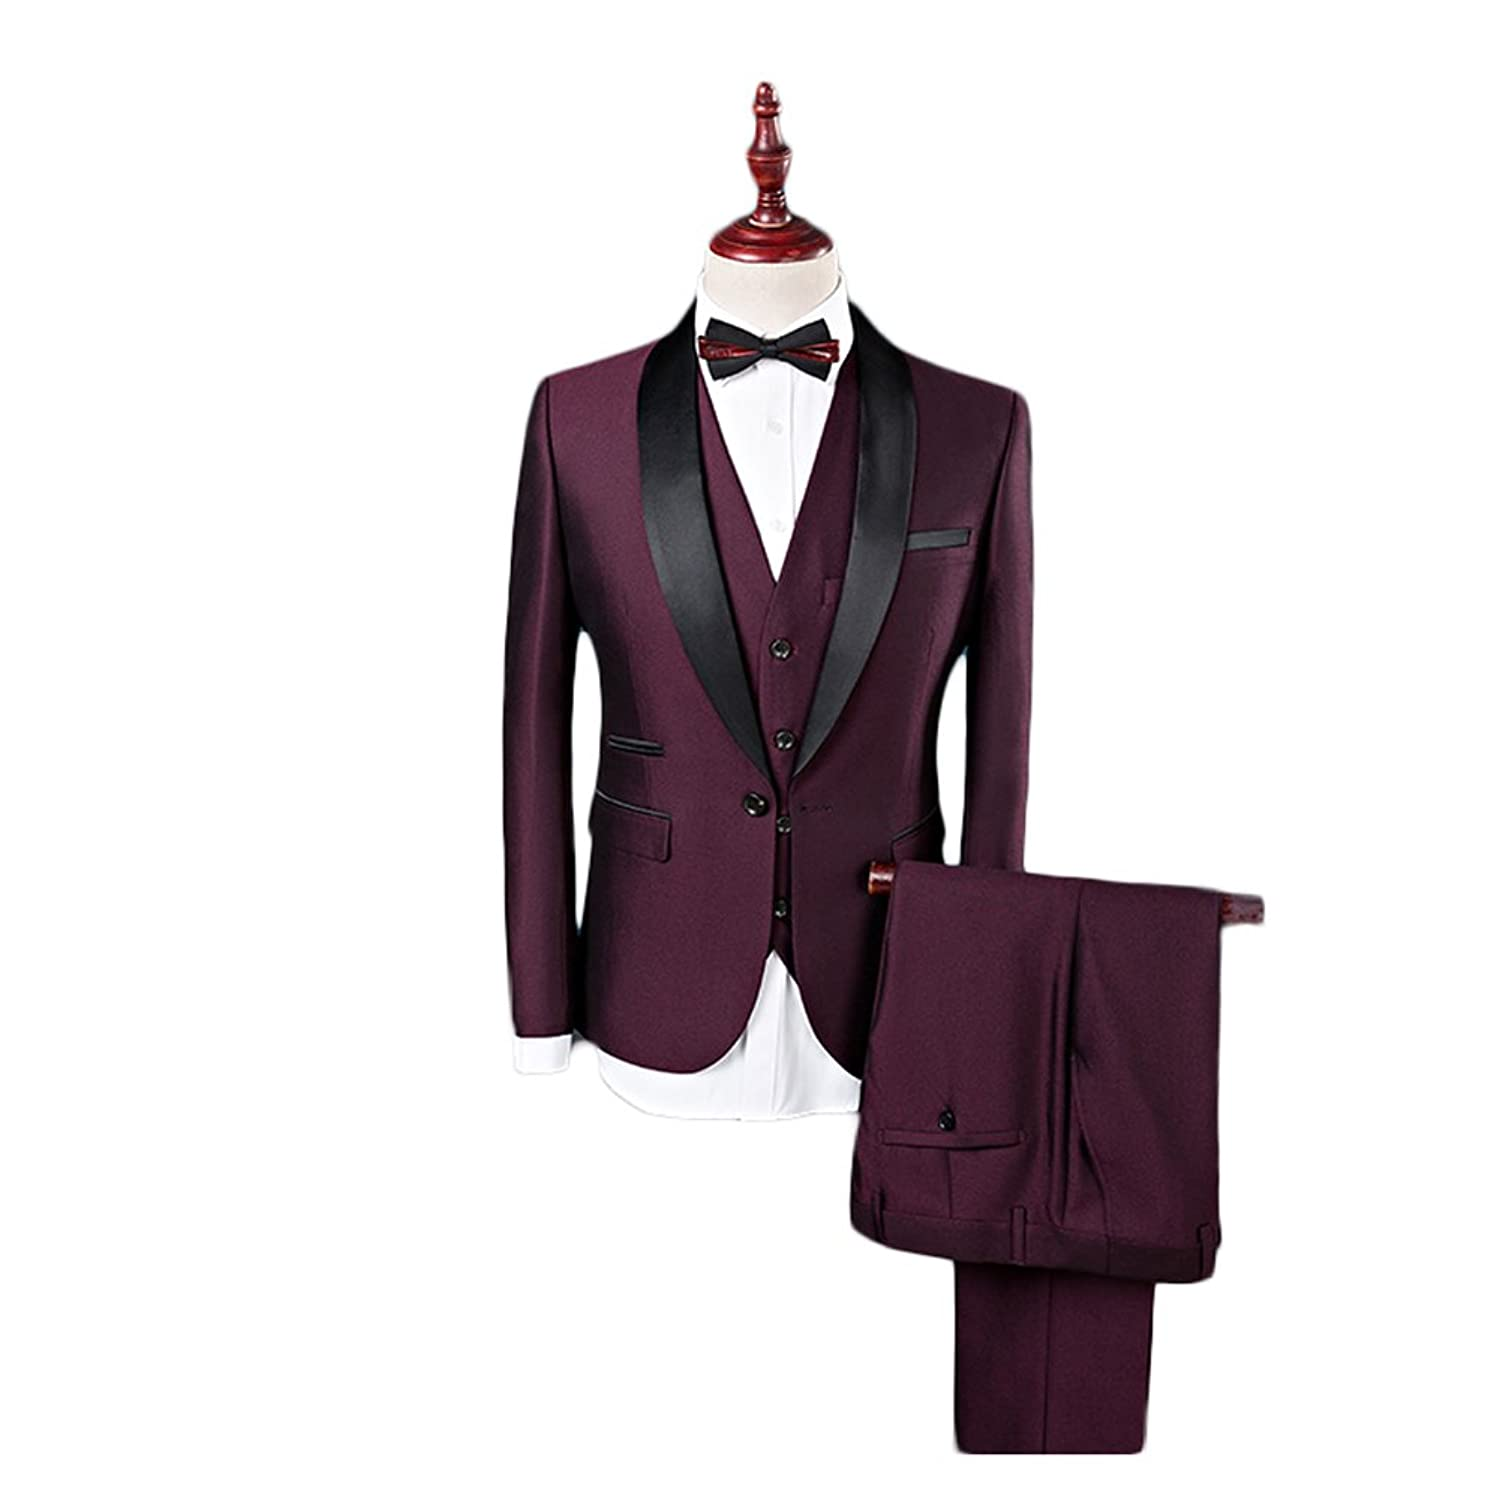 Botong Burgundy Shawl Lapel Men Suits 3 Pieces Wedding Suits For Men Groom Tuxedos